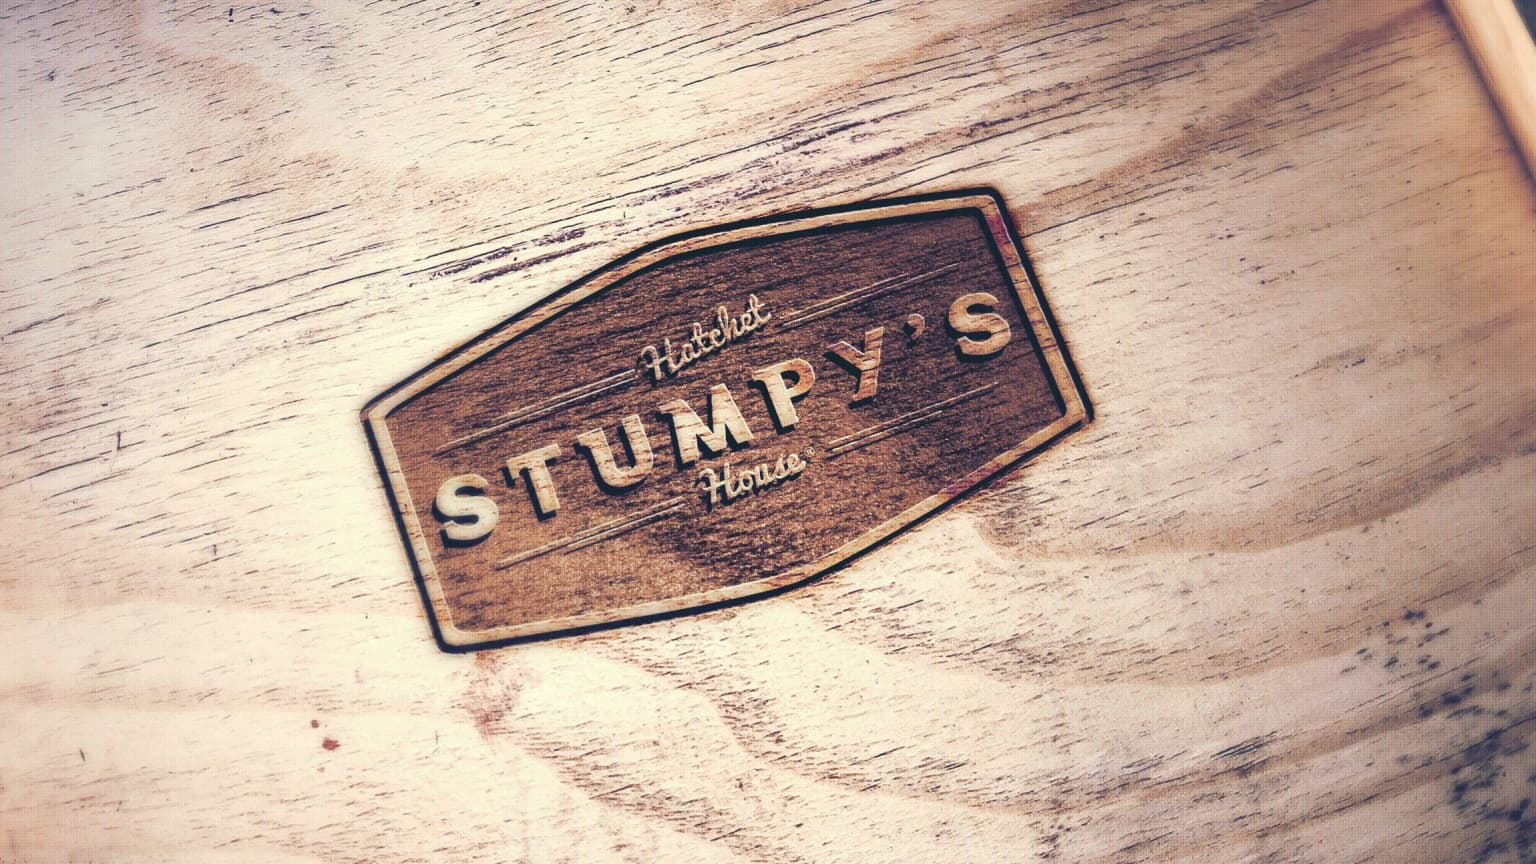 Stumpy's Hatchet House   Director of Design & Project Operations; Principal Design Lead, Product, Marketing, UX; Marketing & Tech Consultant.